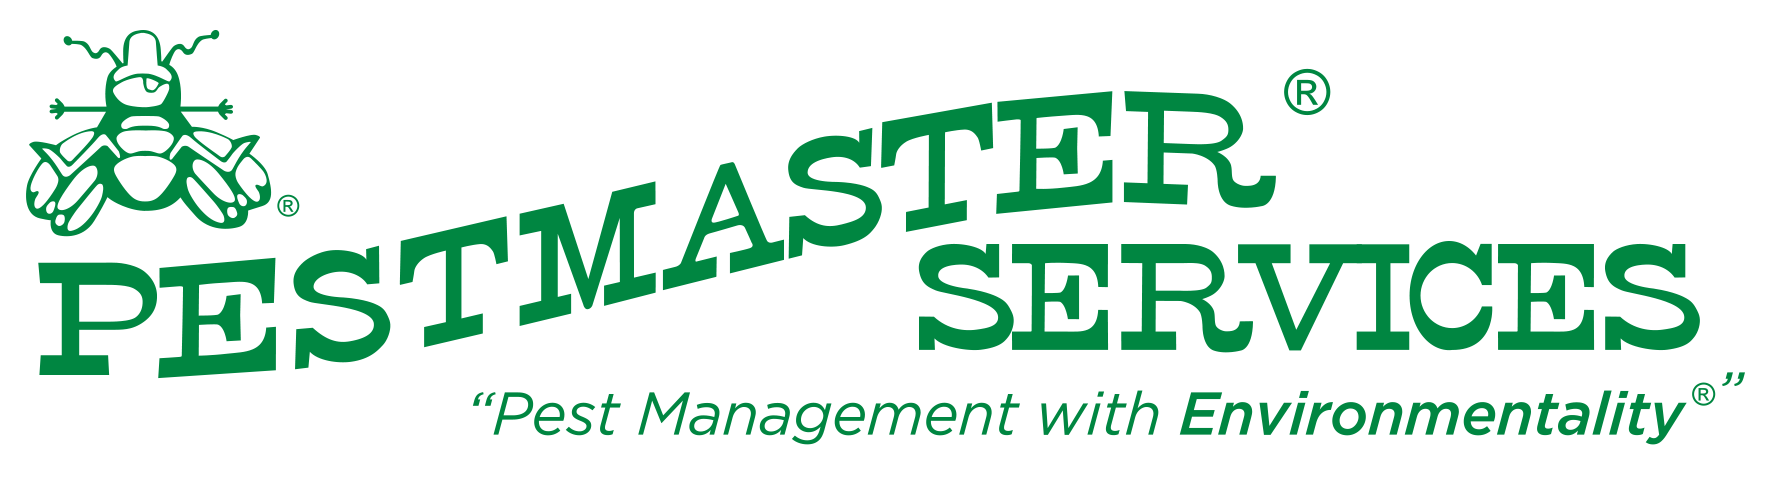 LabelSDS - our clients - Pestmaster Environmentality